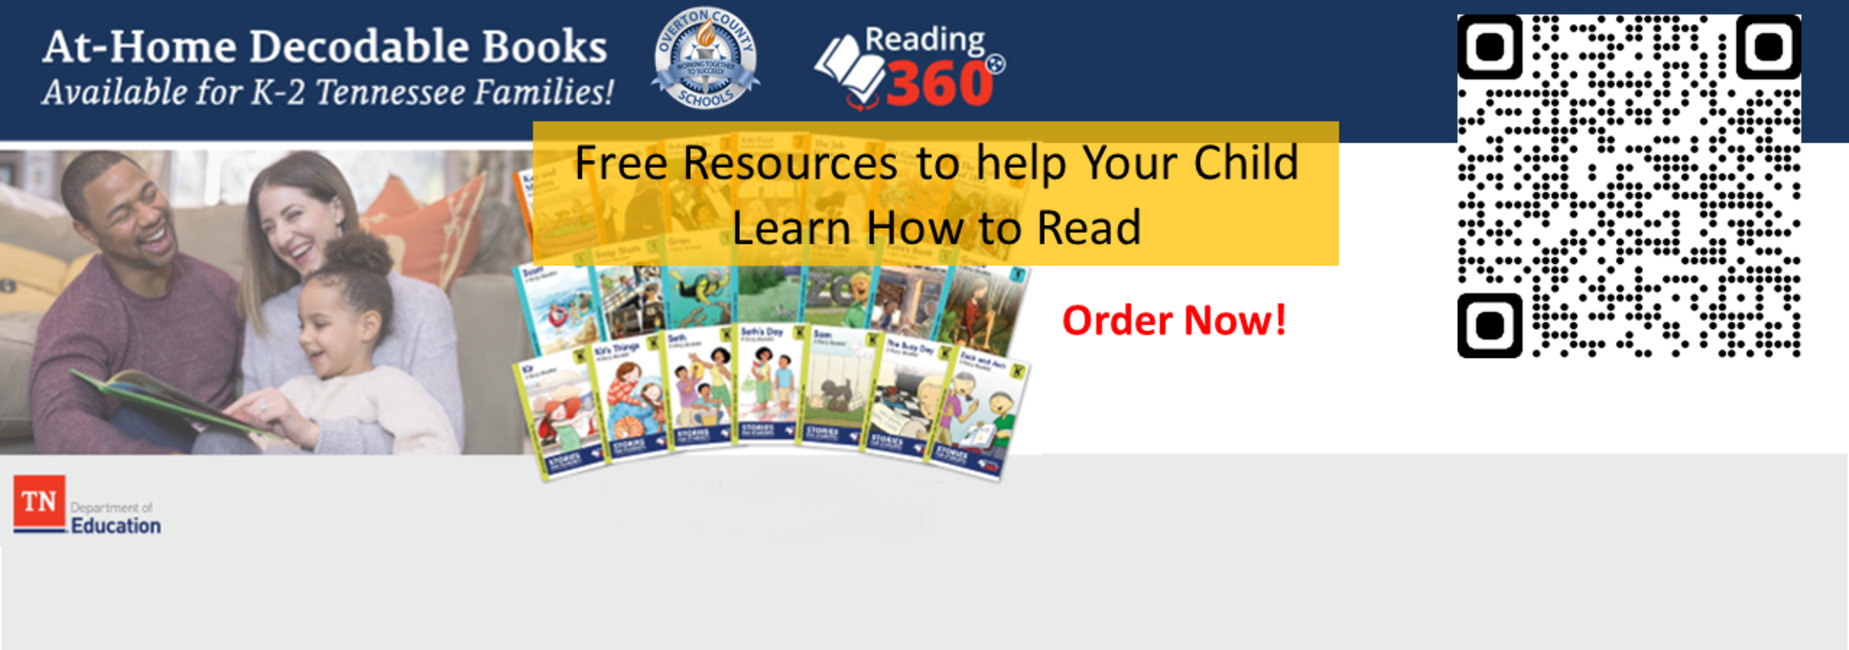 free resources to help your child learn to read